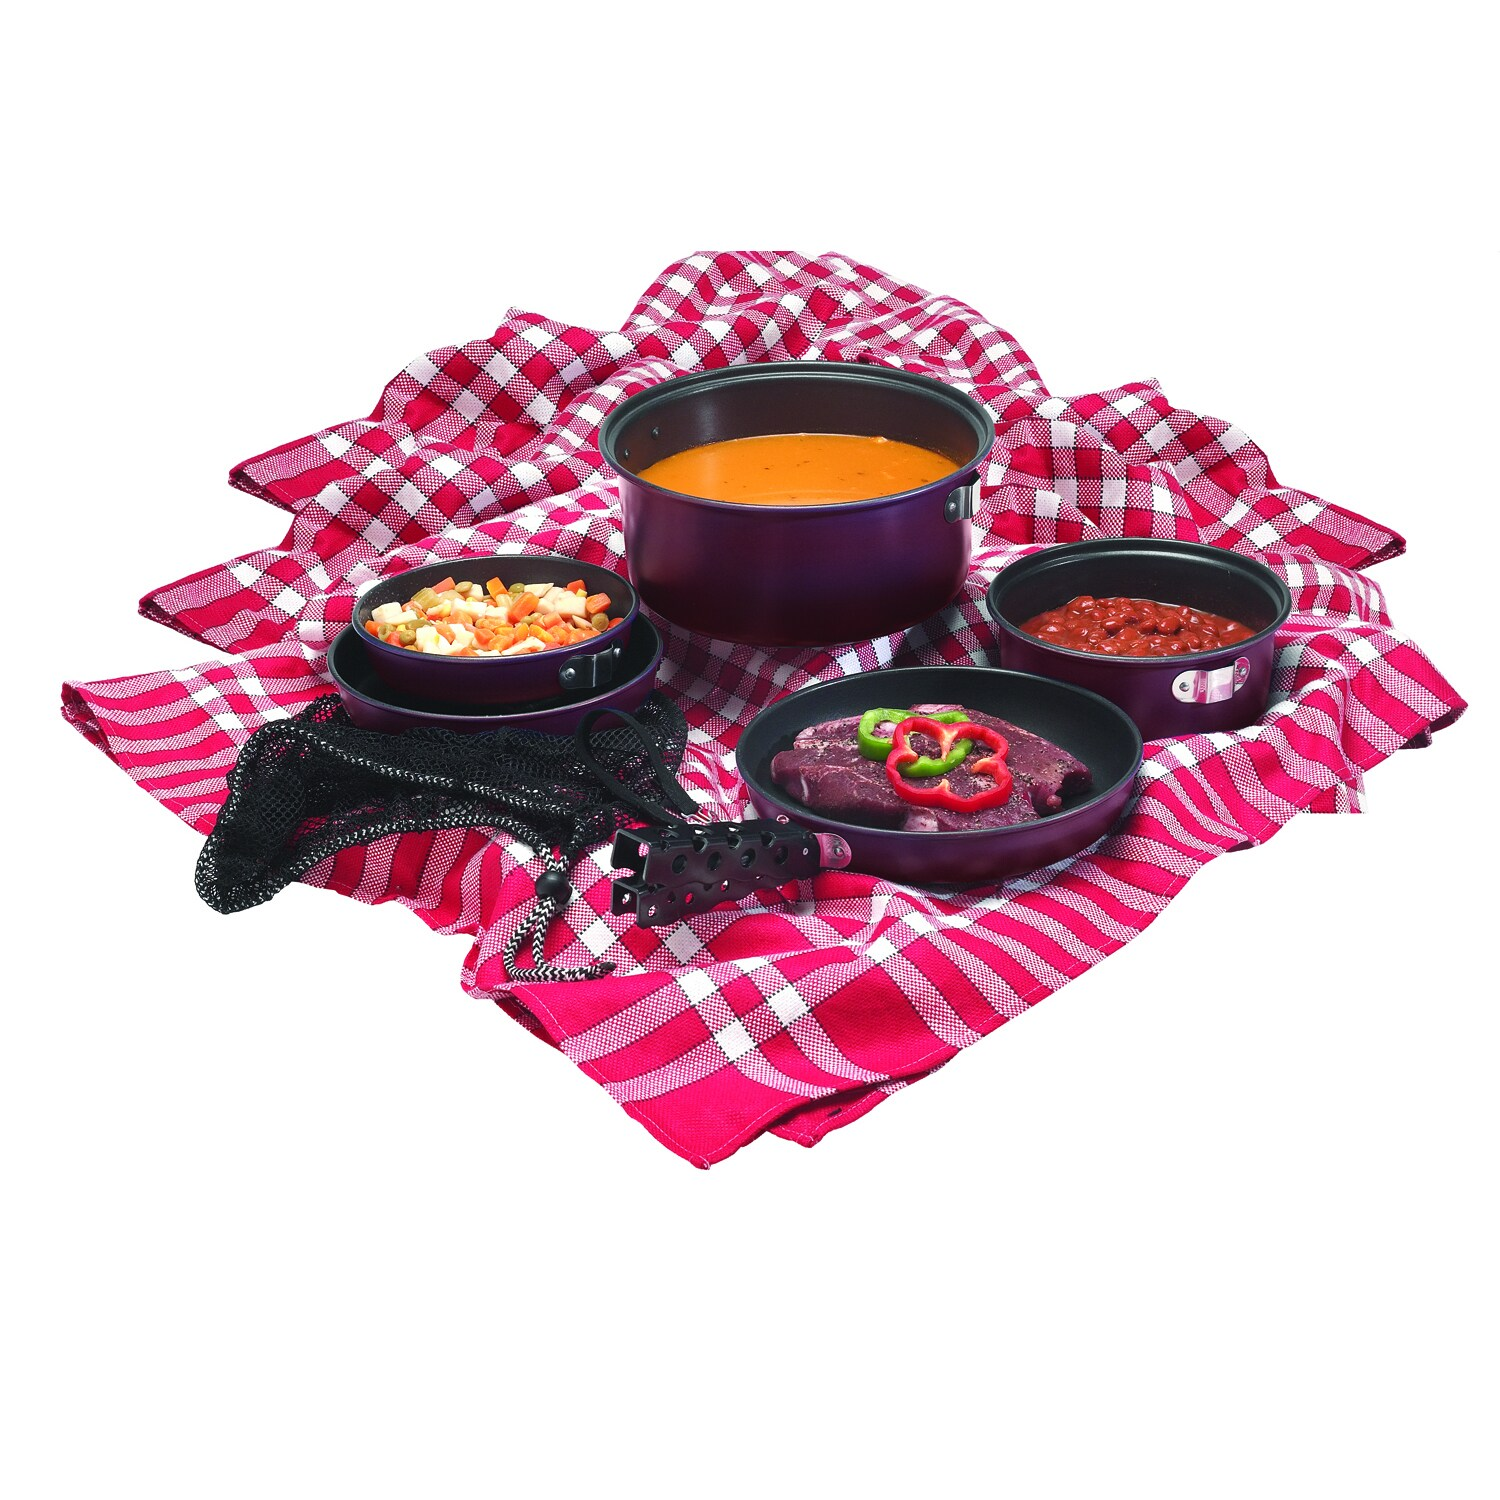 Texsport 13446 7 PC kangourou Cook Set